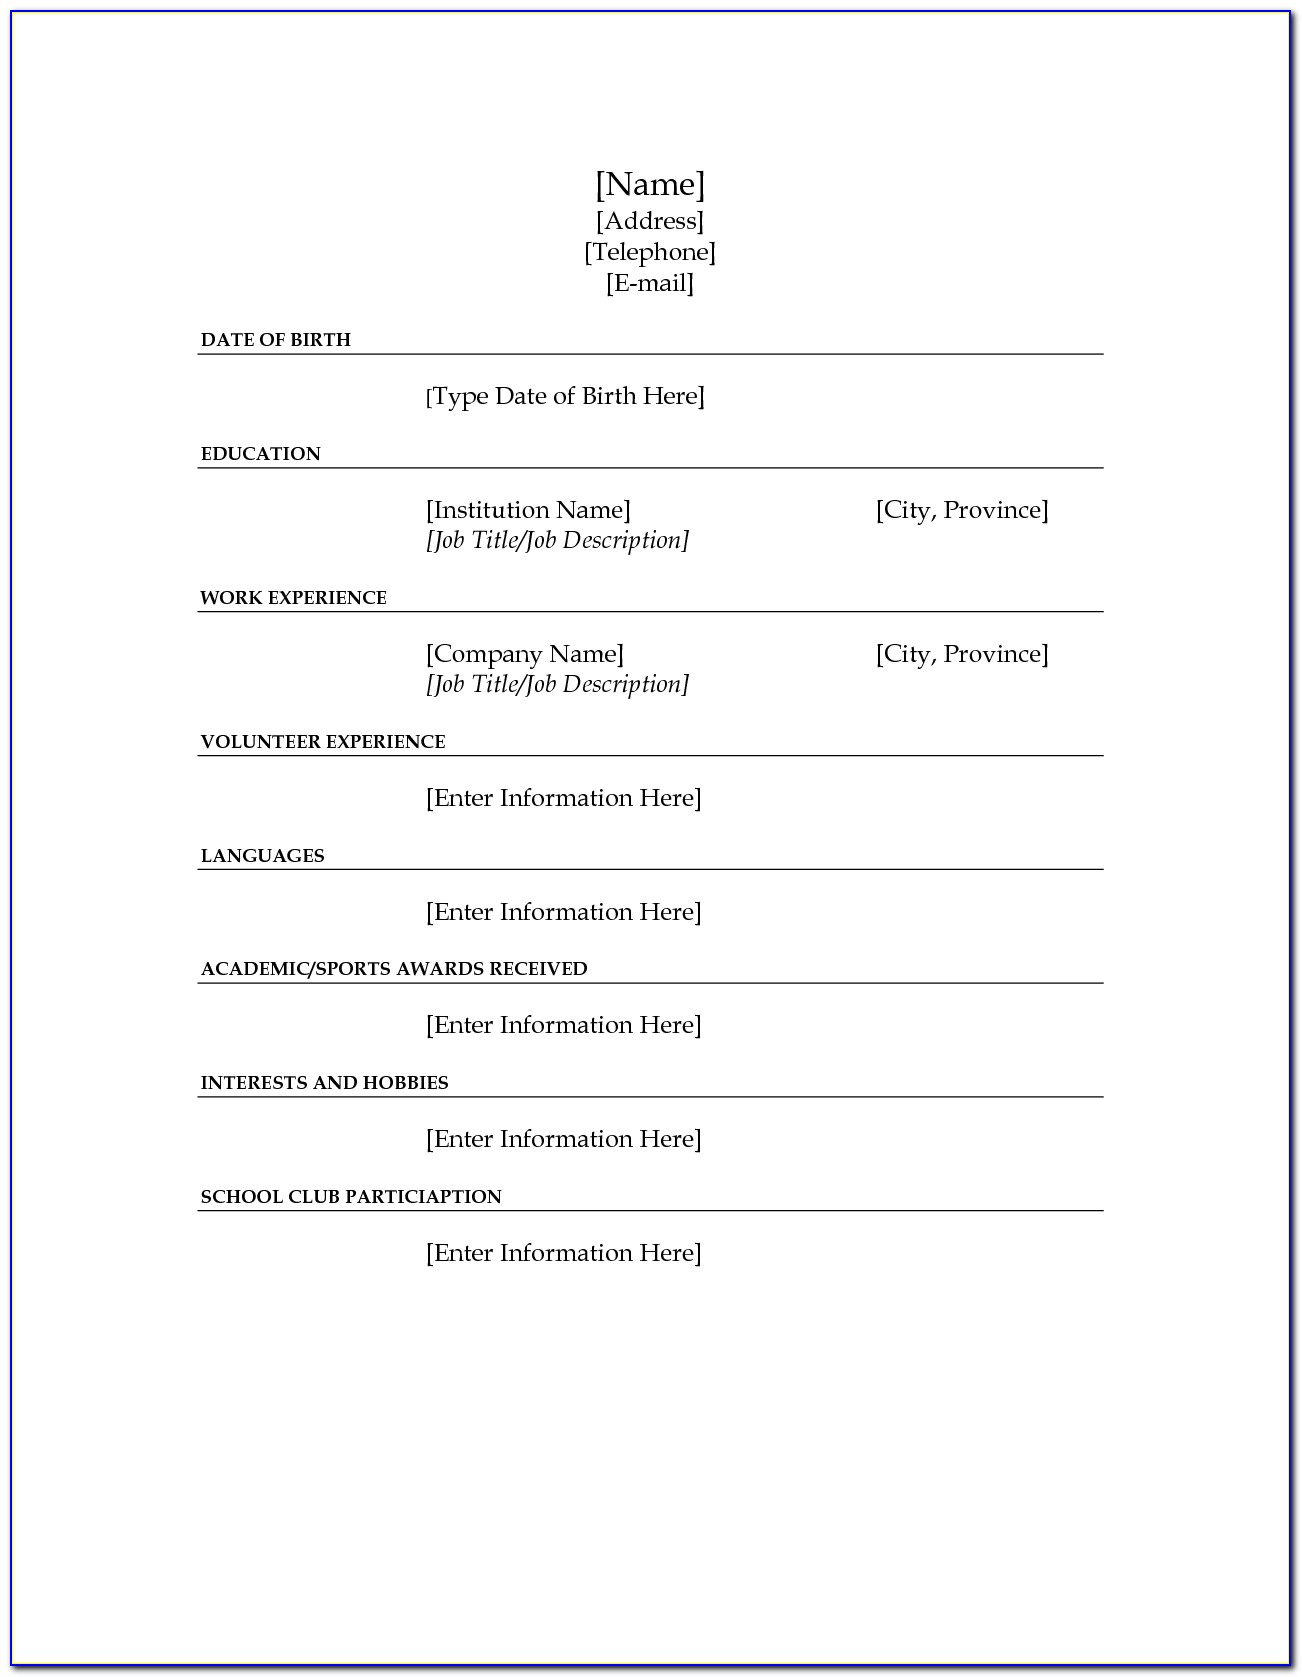 Fill In The Blank Resume Template For High School Students